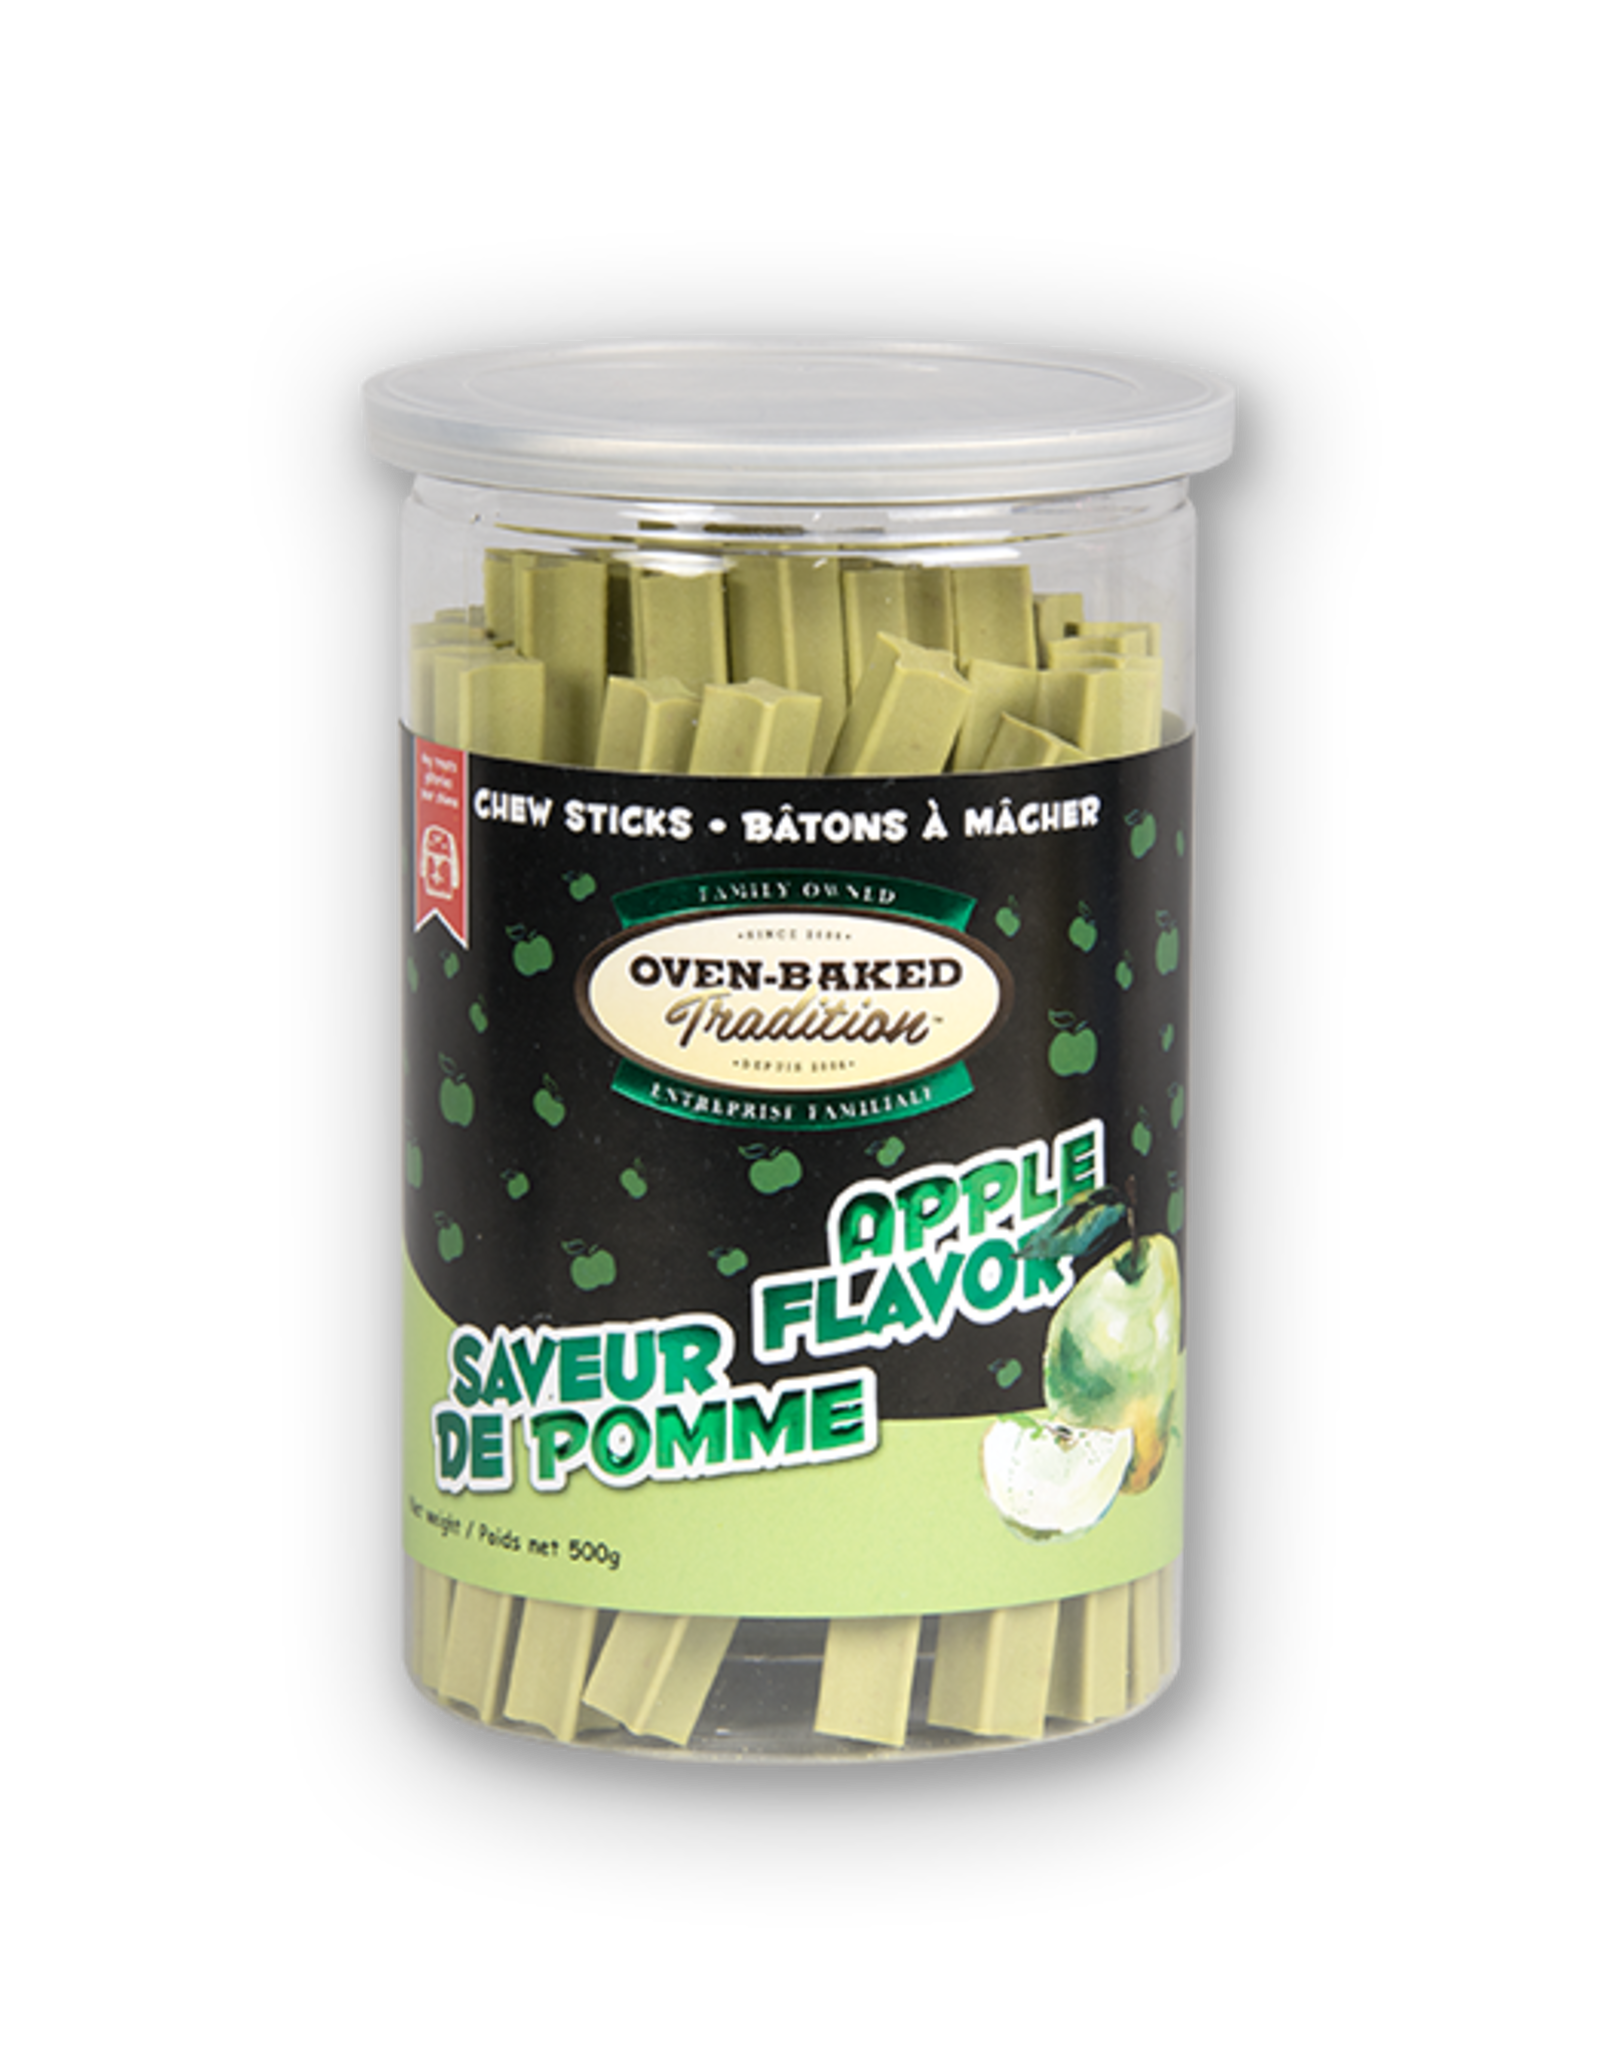 Oven Baked Oven Baked - Apple Flavour Chew Sticks 500g